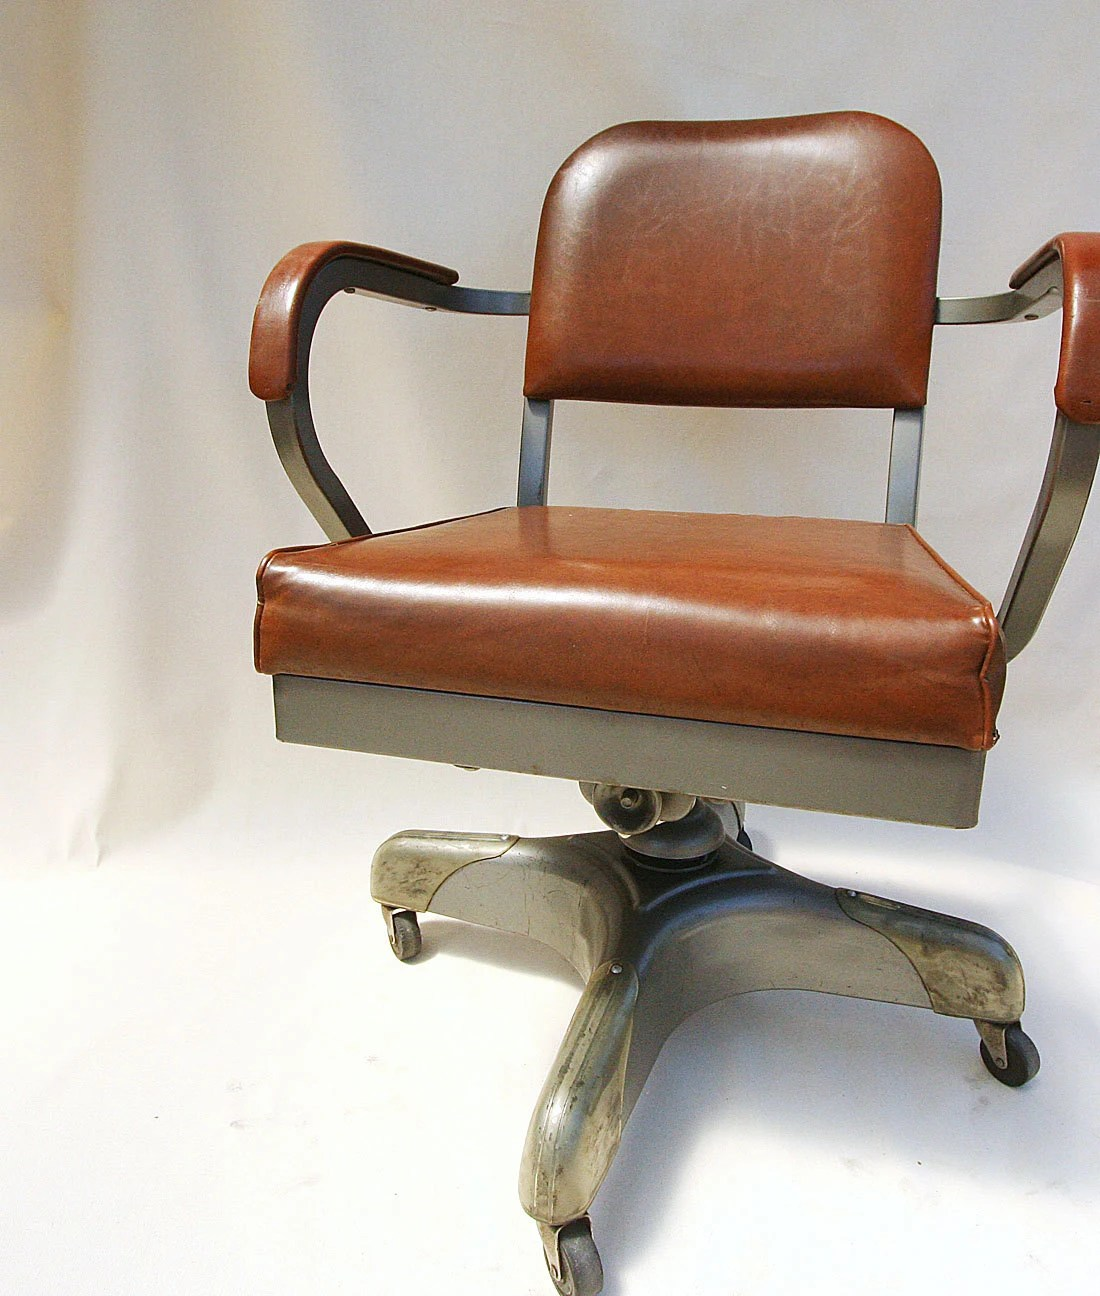 Vintage Industrial Office Chair with Arms by claudettesvintage